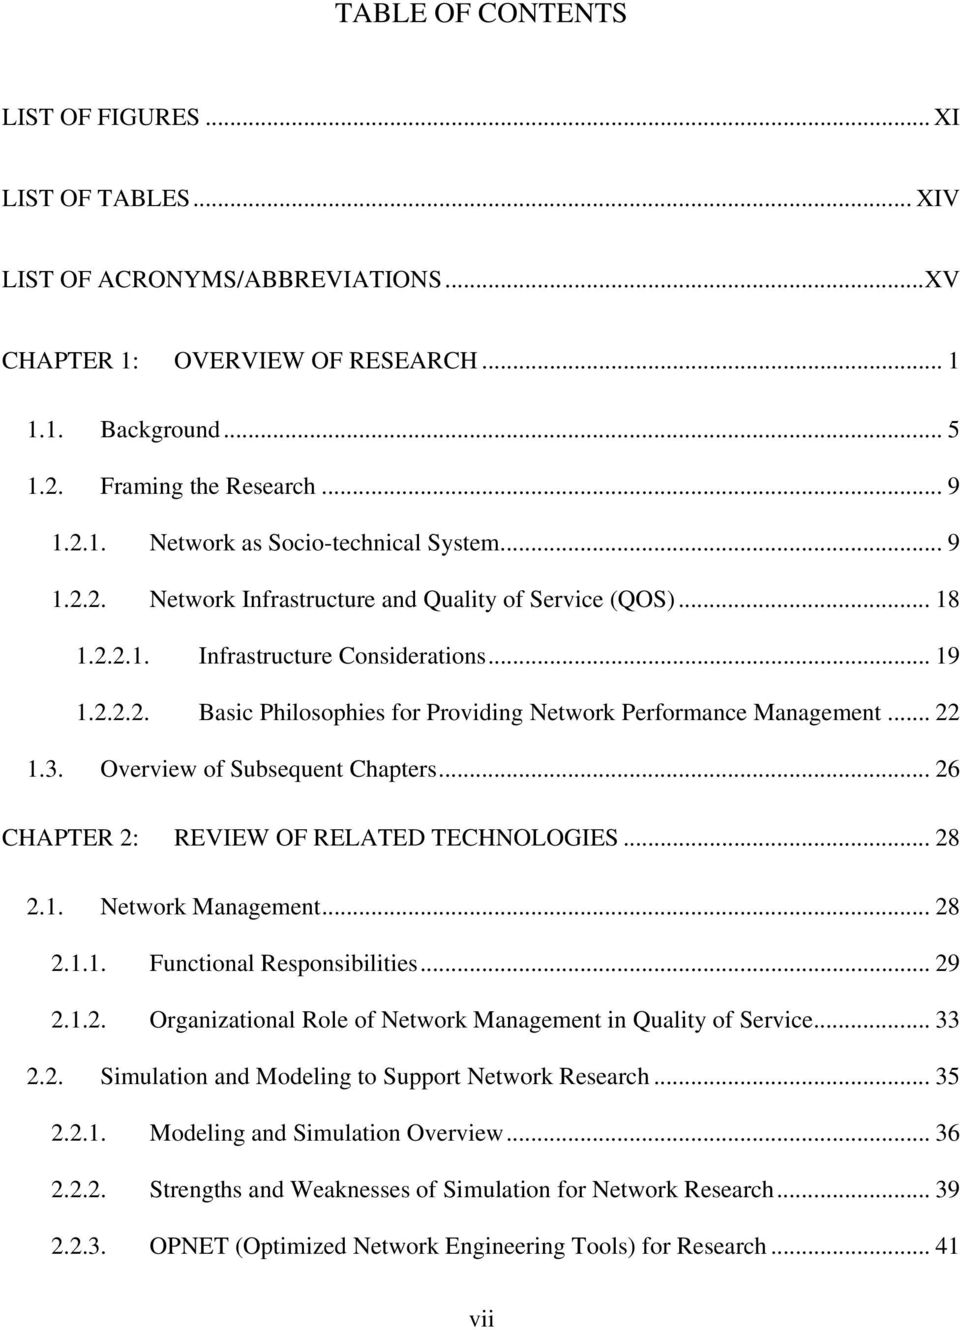 Overview of Subsequent Chapters... 26 CHAPTER 2: REVIEW OF RELATED TECHNOLOGIES... 28 2.1. Network Management... 28 2.1.1. Functional Responsibilities... 29 2.1.2. Organizational Role of Network Management in Quality of Service.